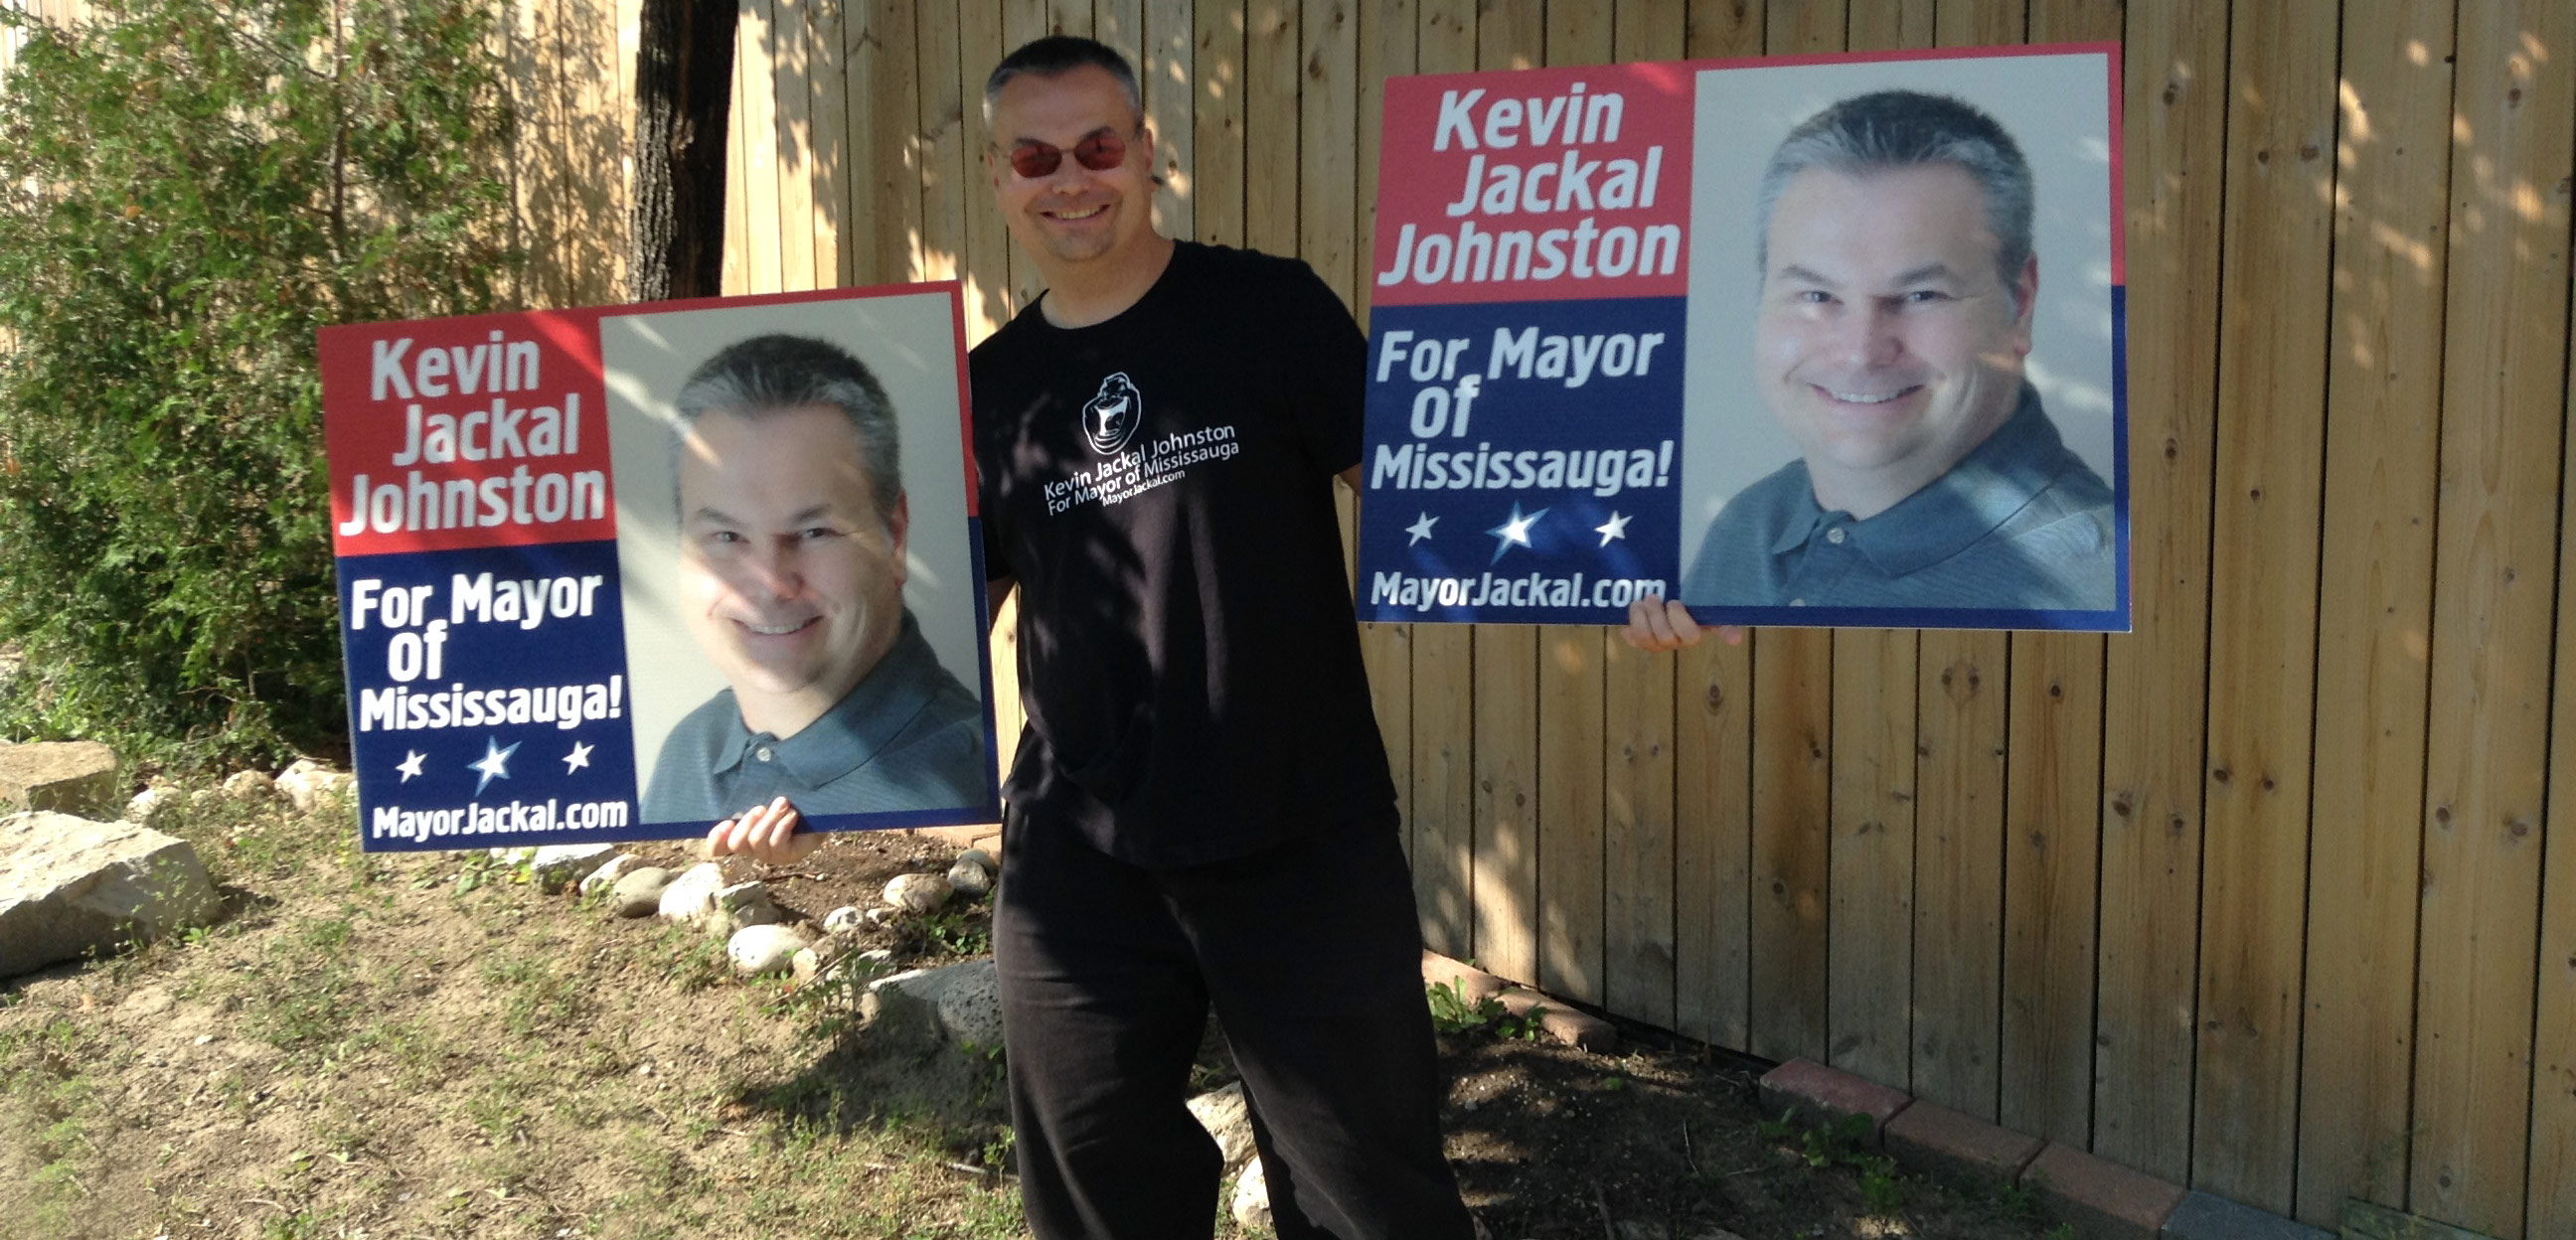 ALT TAGS: Mississauga Mayor - Mississauga Mayor Race, Kevin Jackal Johnston VS Bonnie Crombie vs Steve Mahoney - 2014 Mississauga Elections - 2018 Mississauga Mayor Race - Mississauga Elections